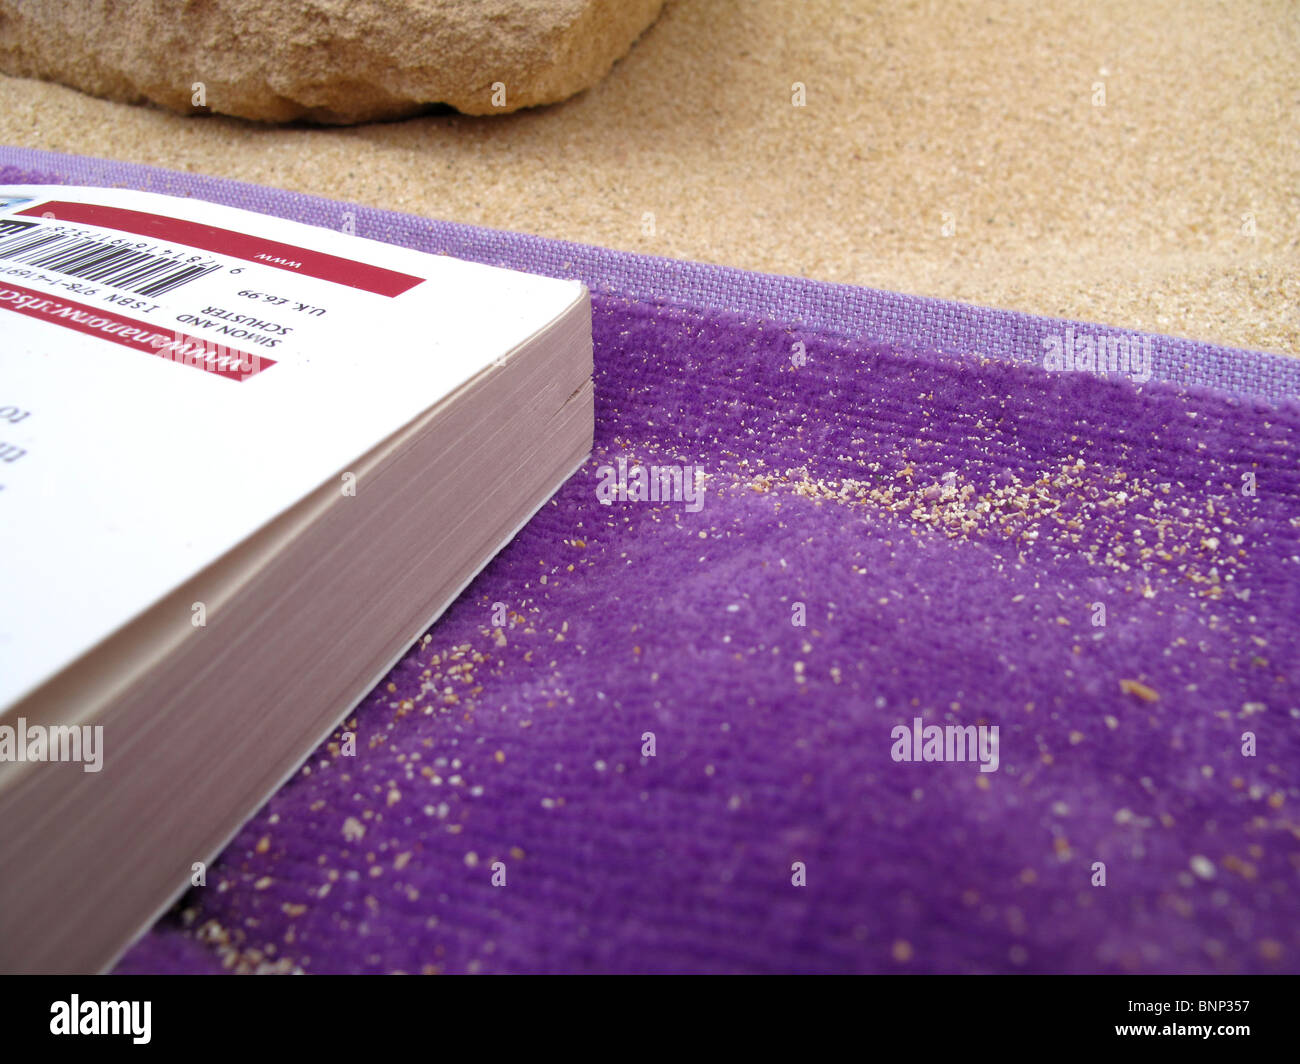 Paperback book on towel on beach - Stock Image